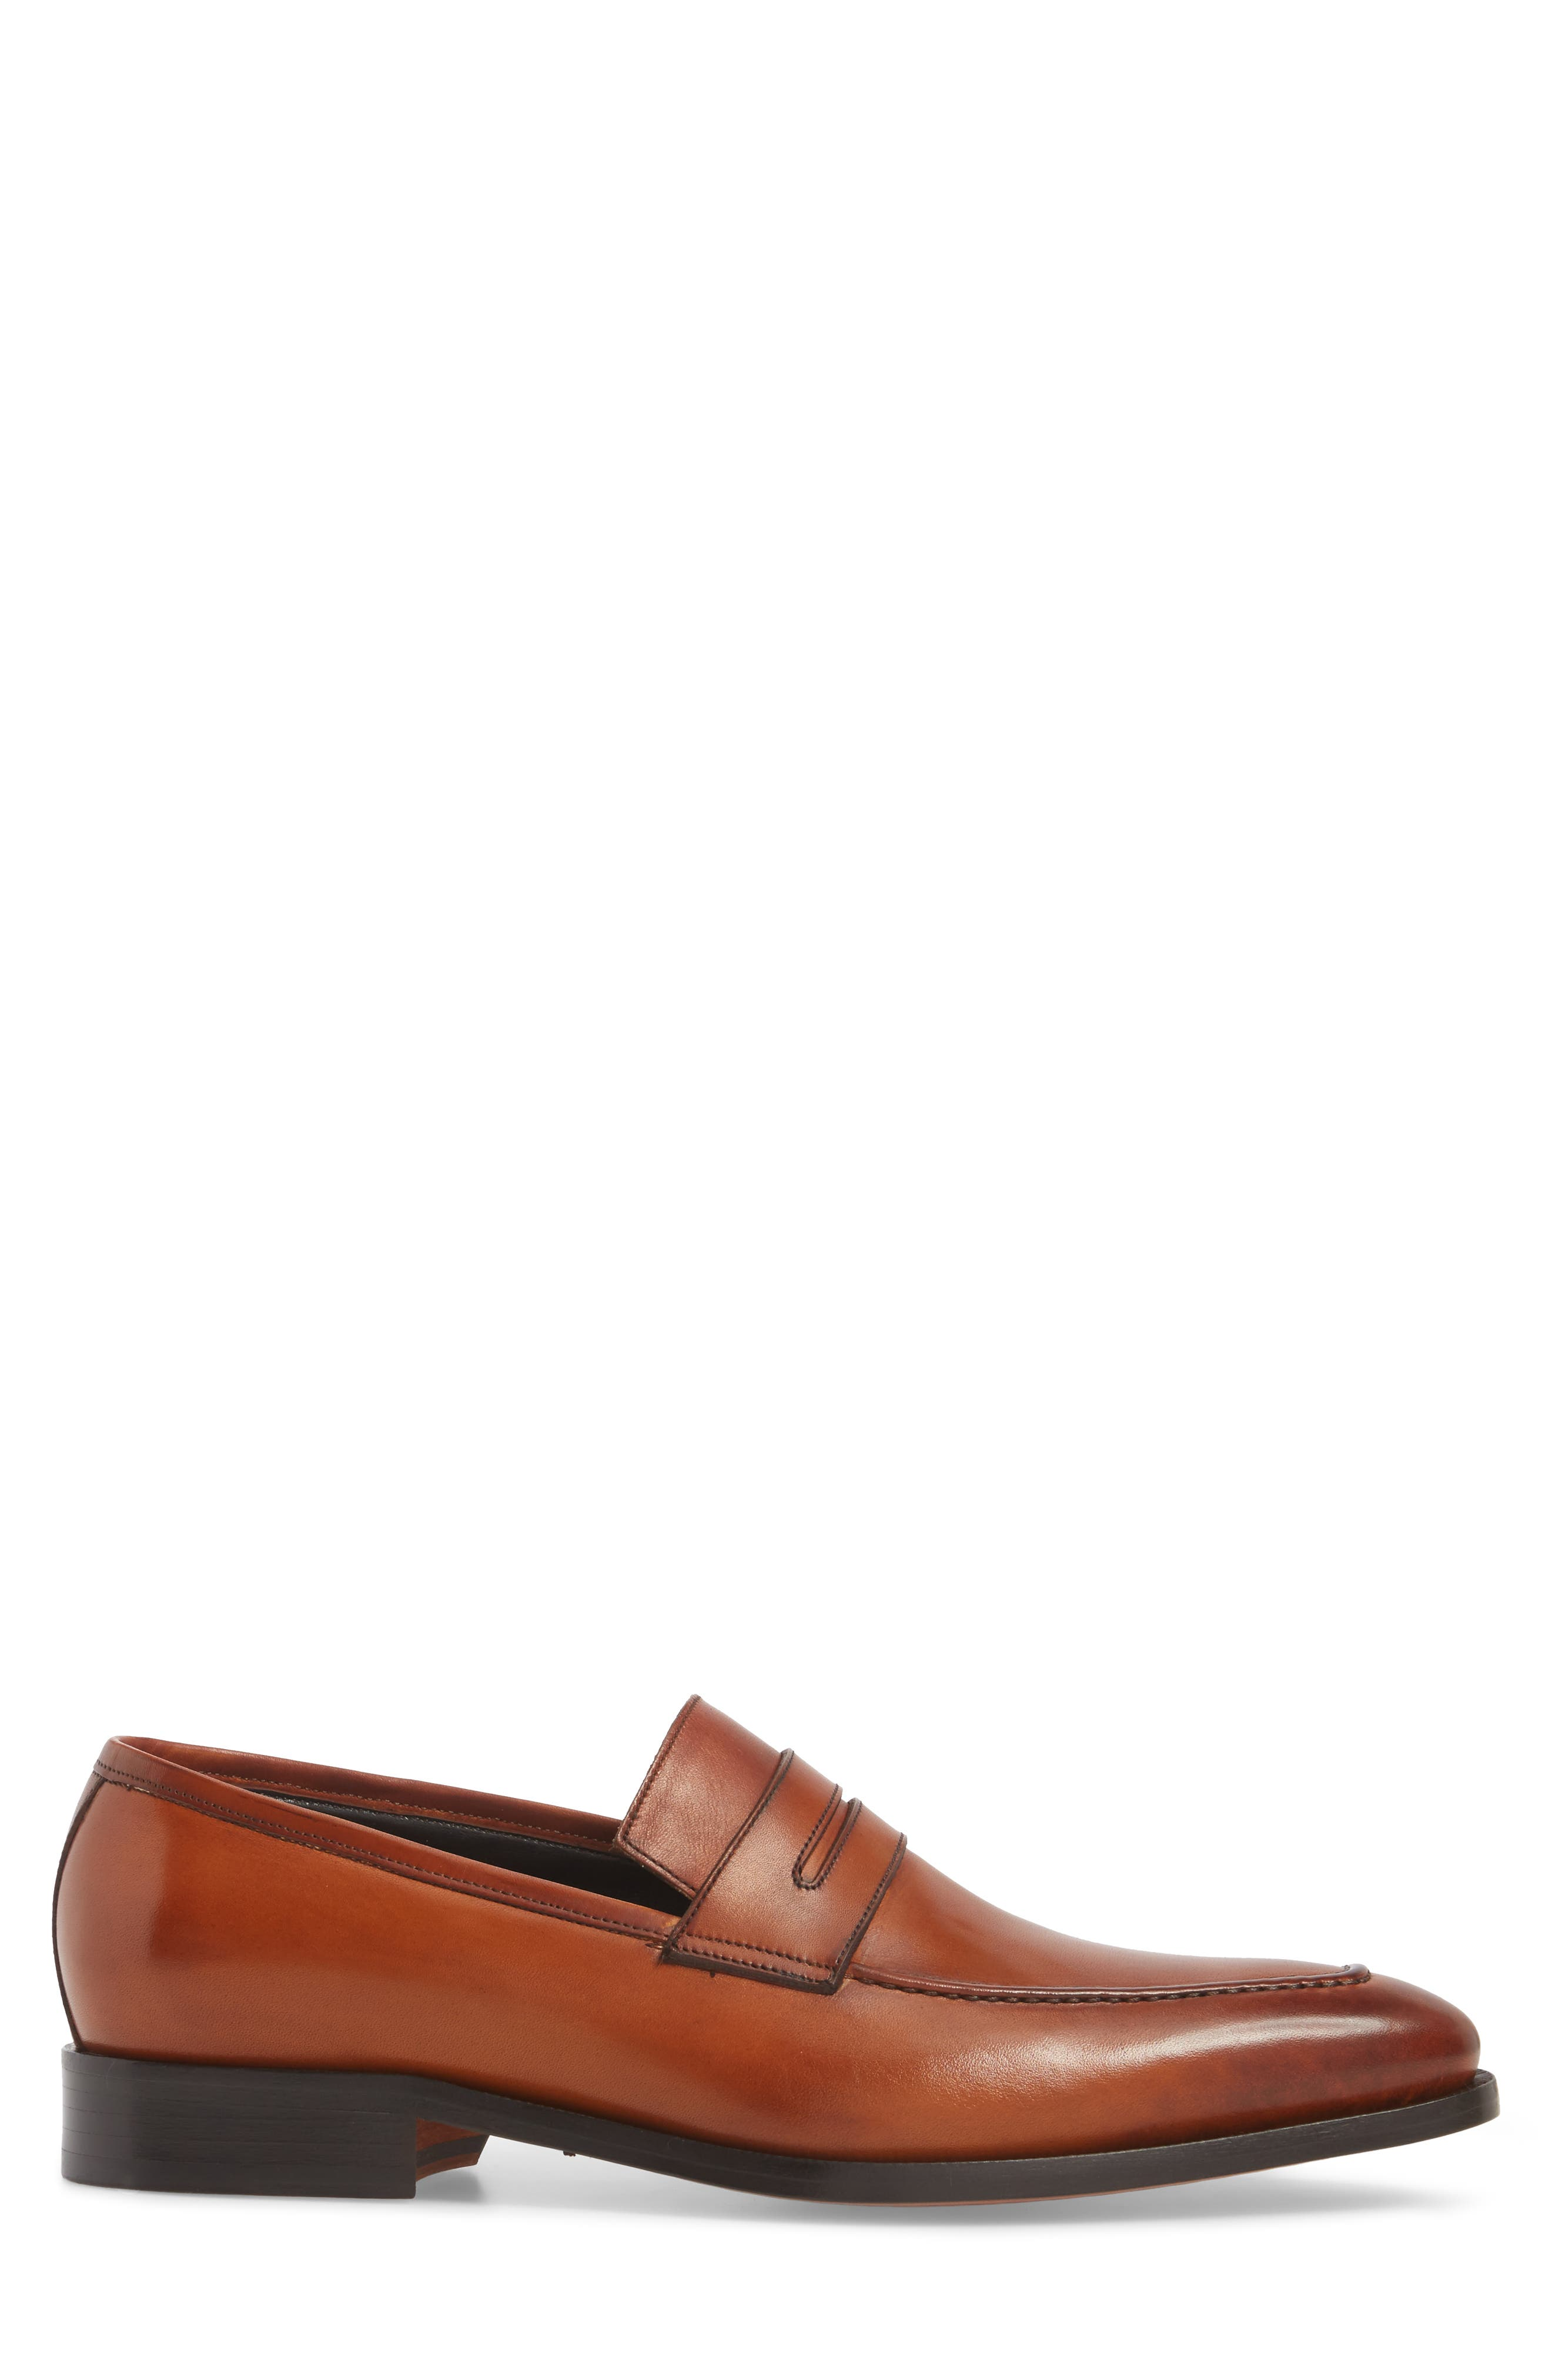 Eastwood Apron Toe Penny Loafer,                             Alternate thumbnail 3, color,                             231